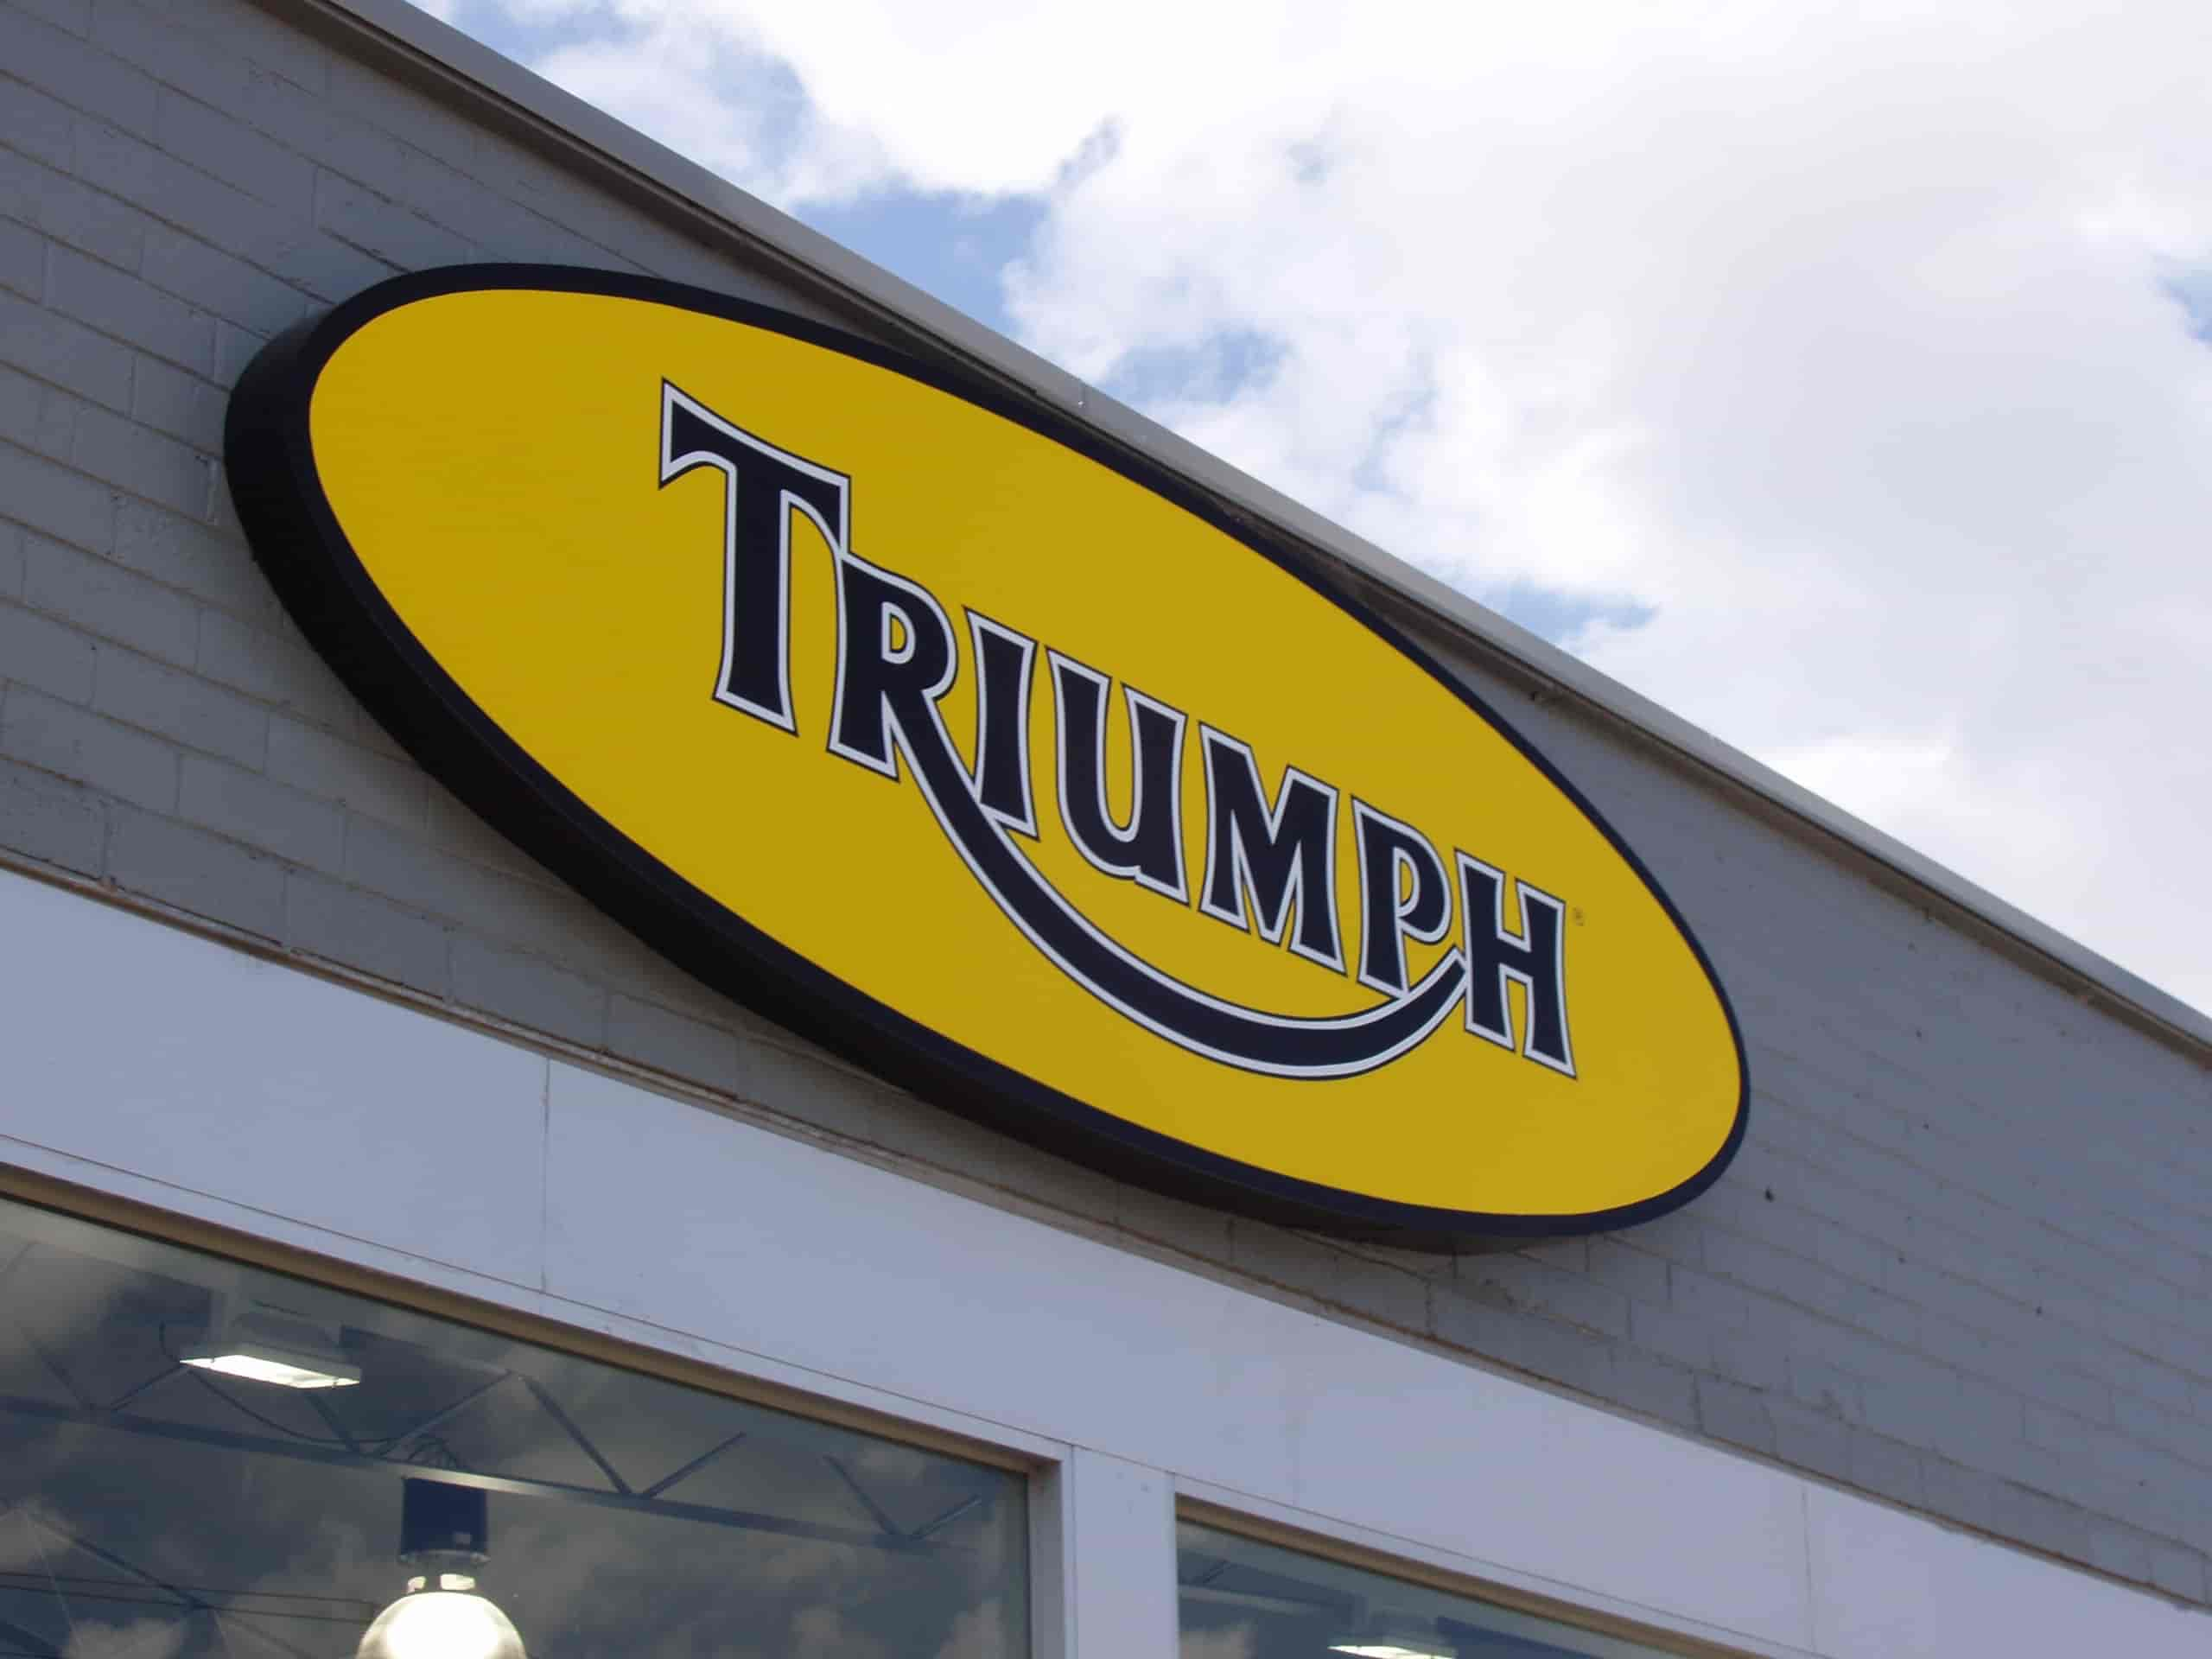 Triumph signage by Jag signs